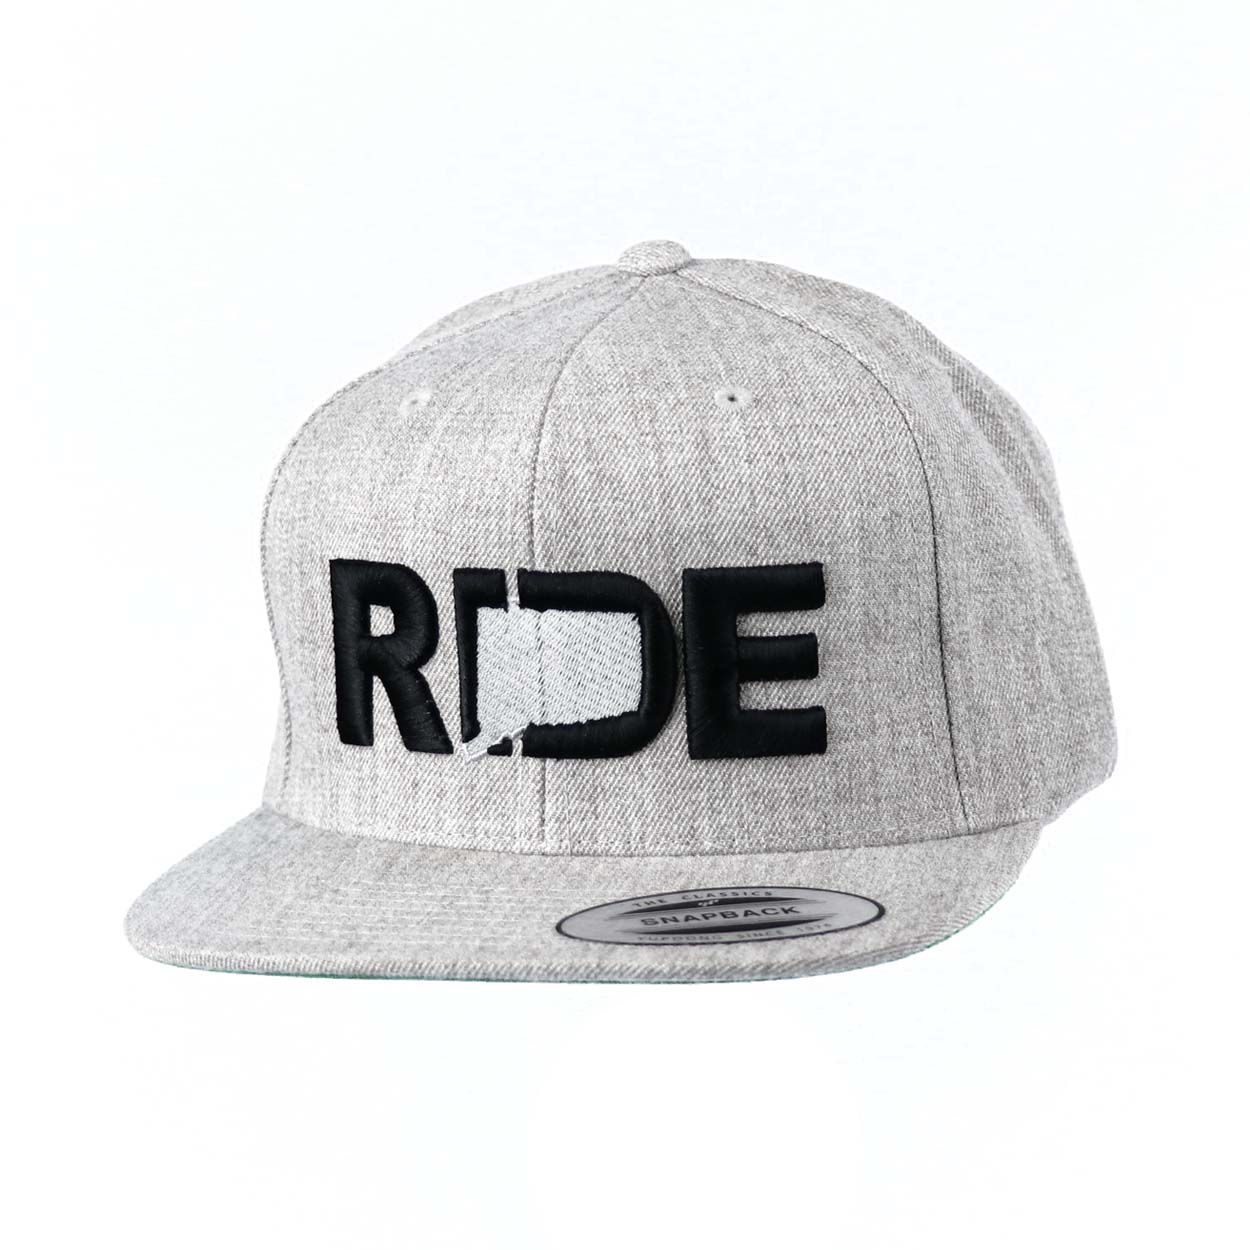 Ride Connecticut Classic Embroidered  Snapback Flat Brim Hat Gray/Black